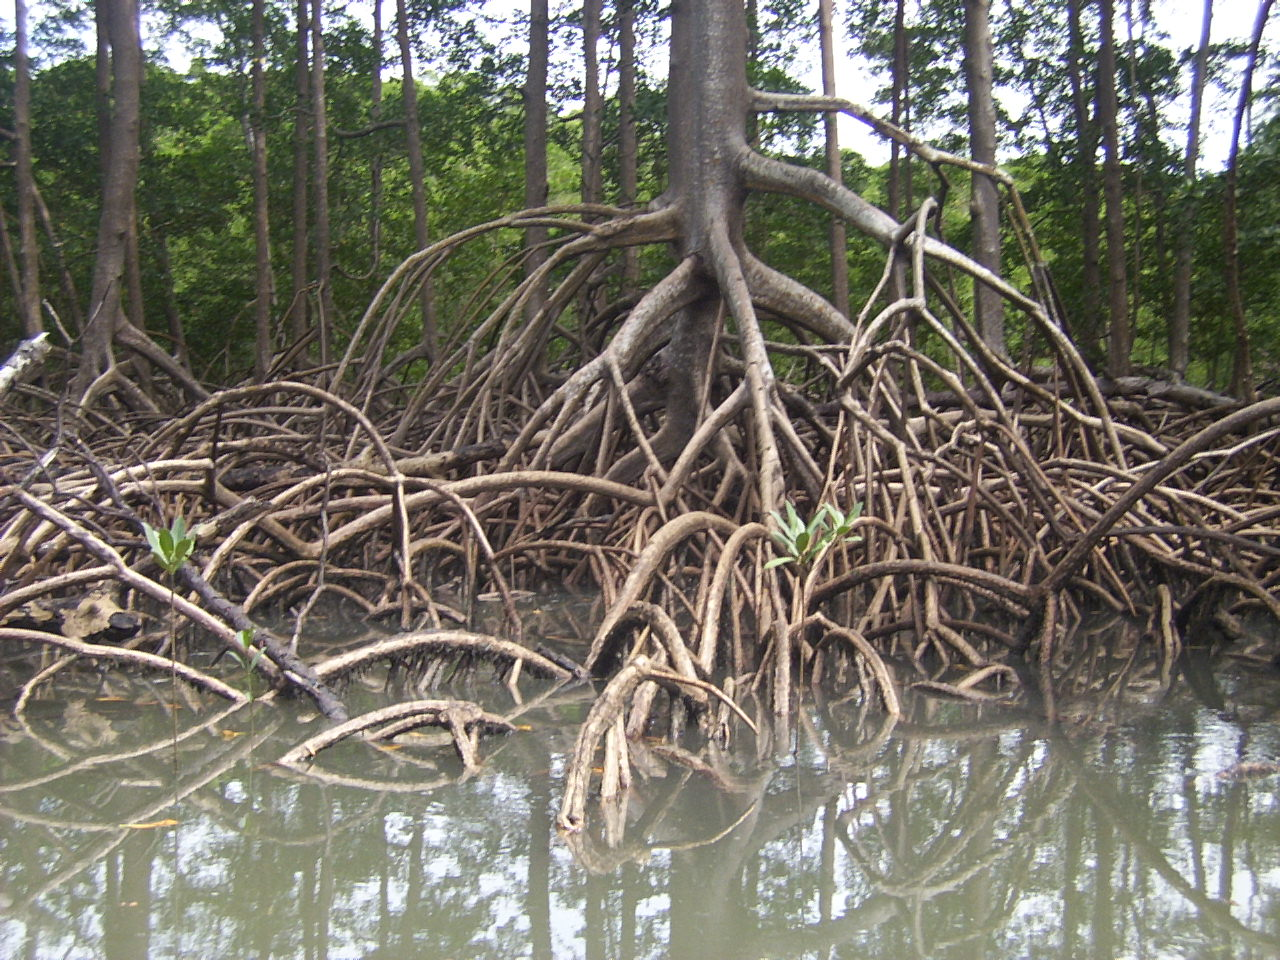 Mangrove Roots_by_cesarpb.jpg